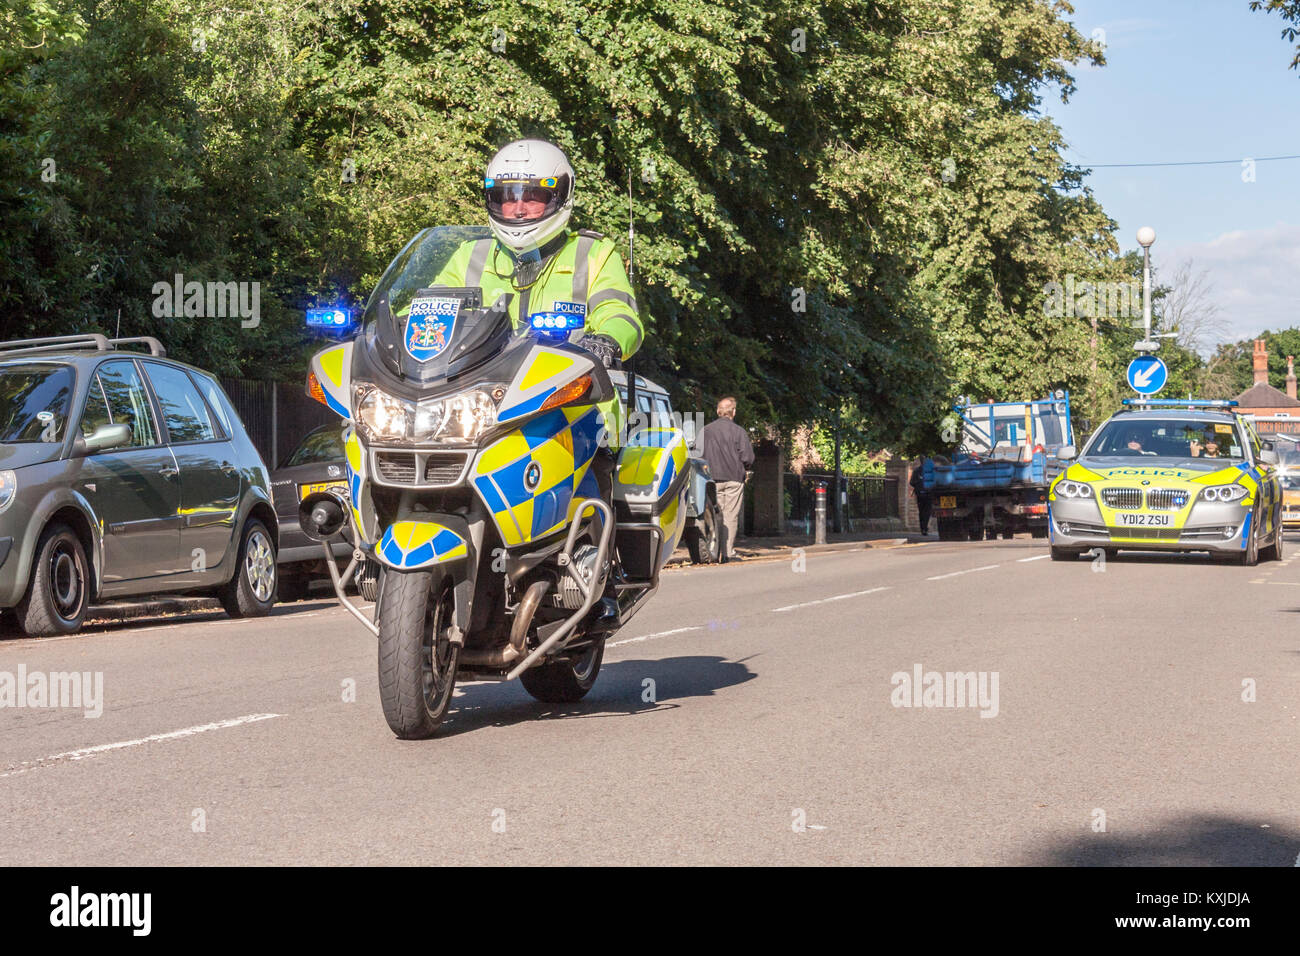 Thames Valley Police Motorcyclists riding BMW R1200RT Motorcycles - Stock Image